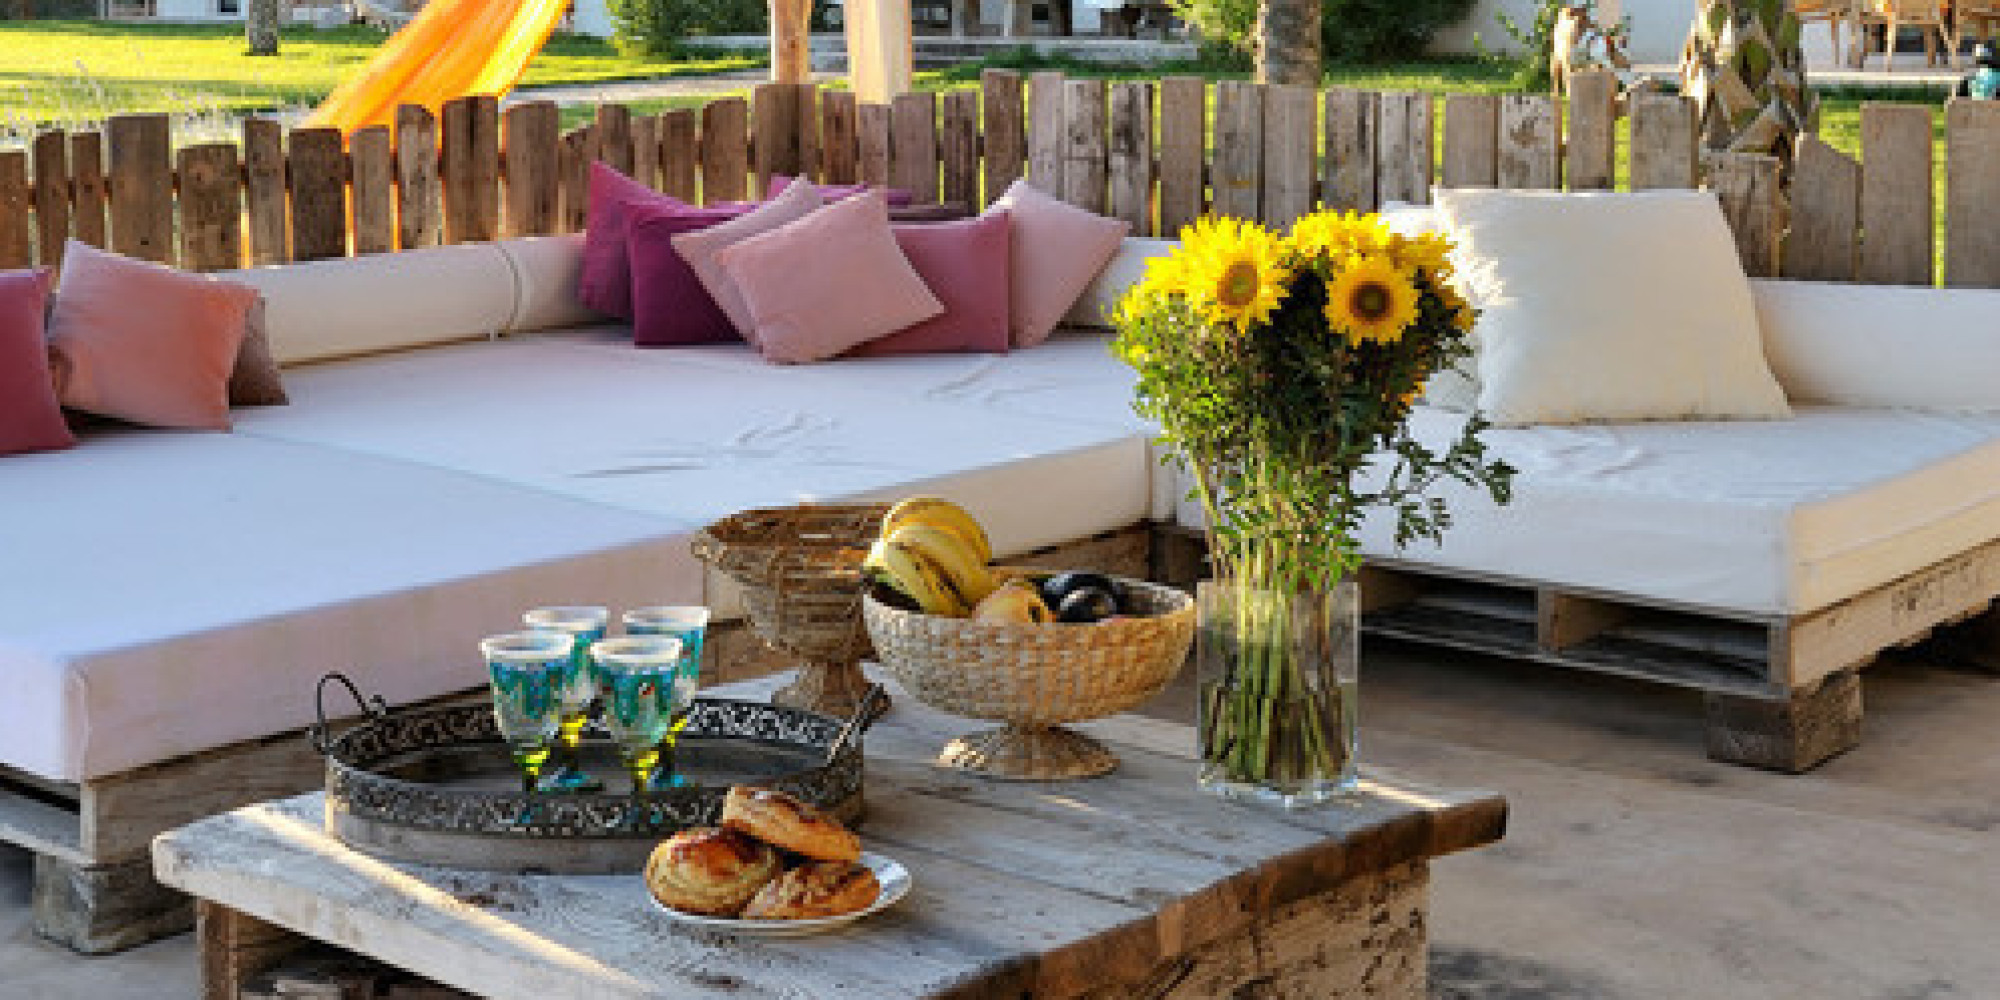 10 lounge-worthy outdoor spaces | huffpost